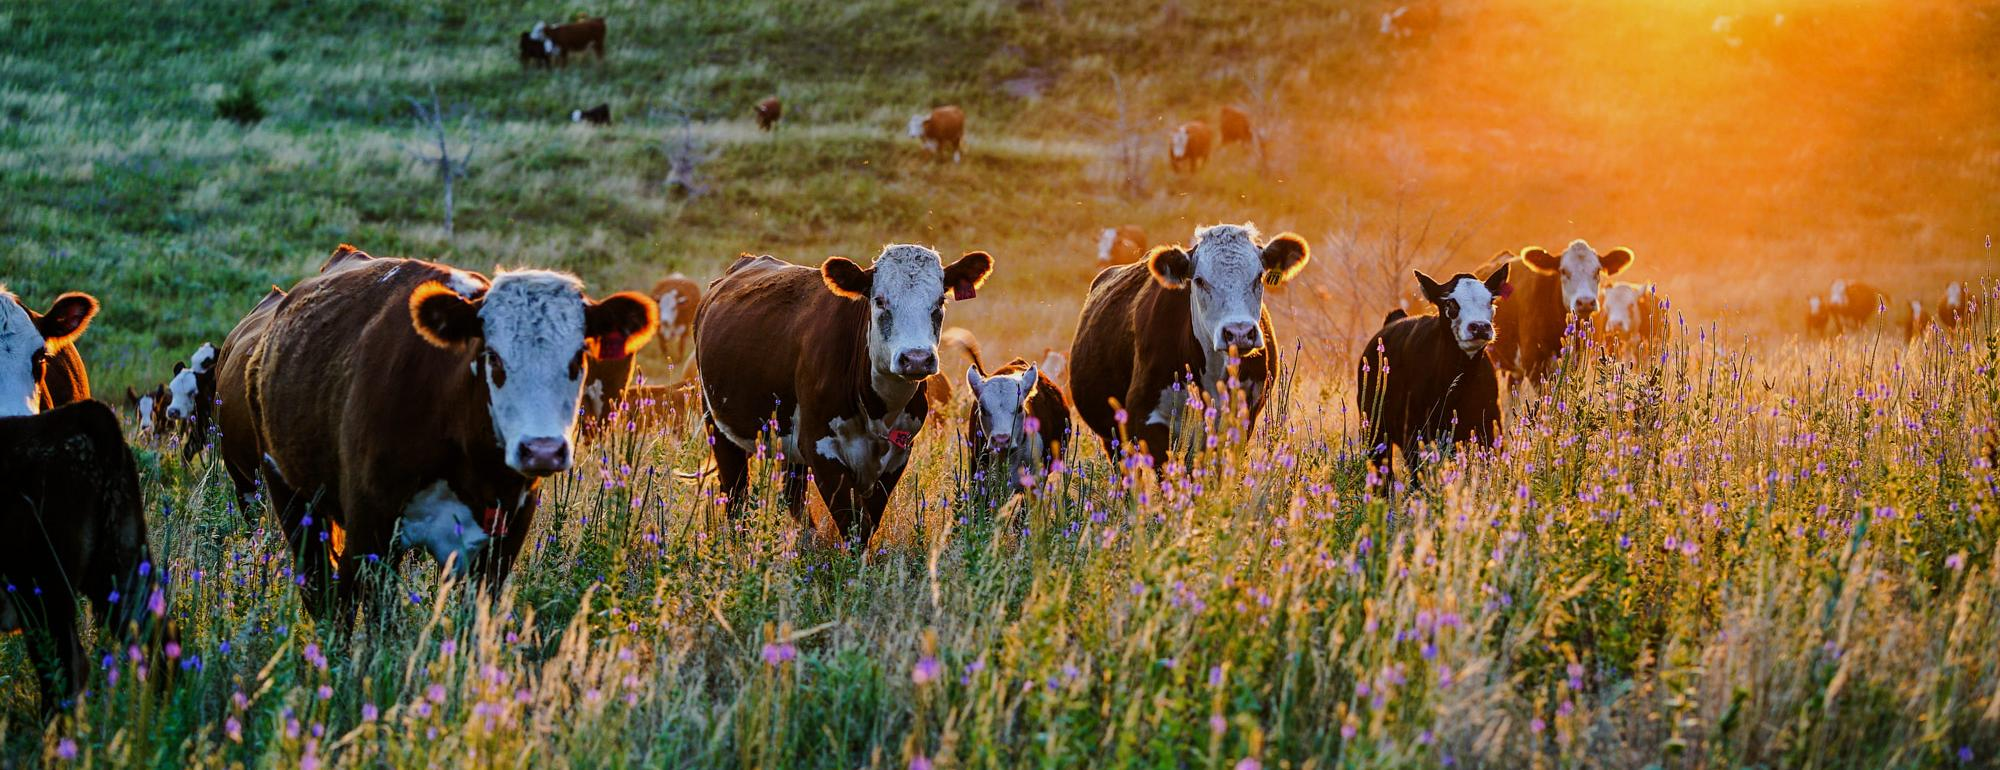 CLEAR Center Newsletter Signup Cattle Grazing in Field of Flowers at Sunset